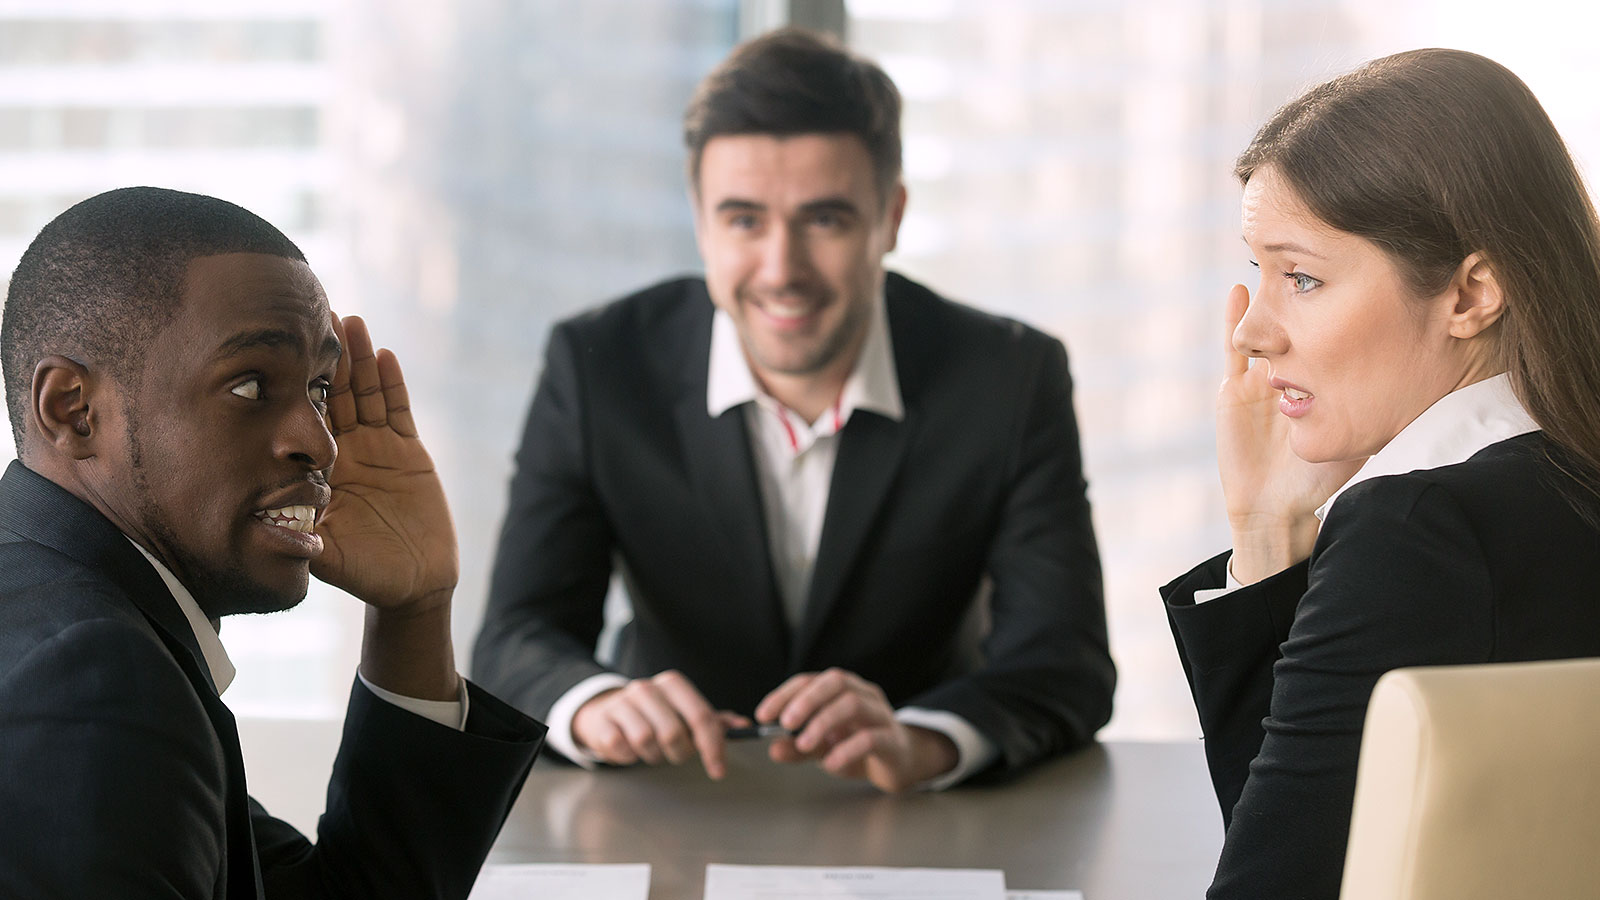 The 4 worst interview mistakes you can make